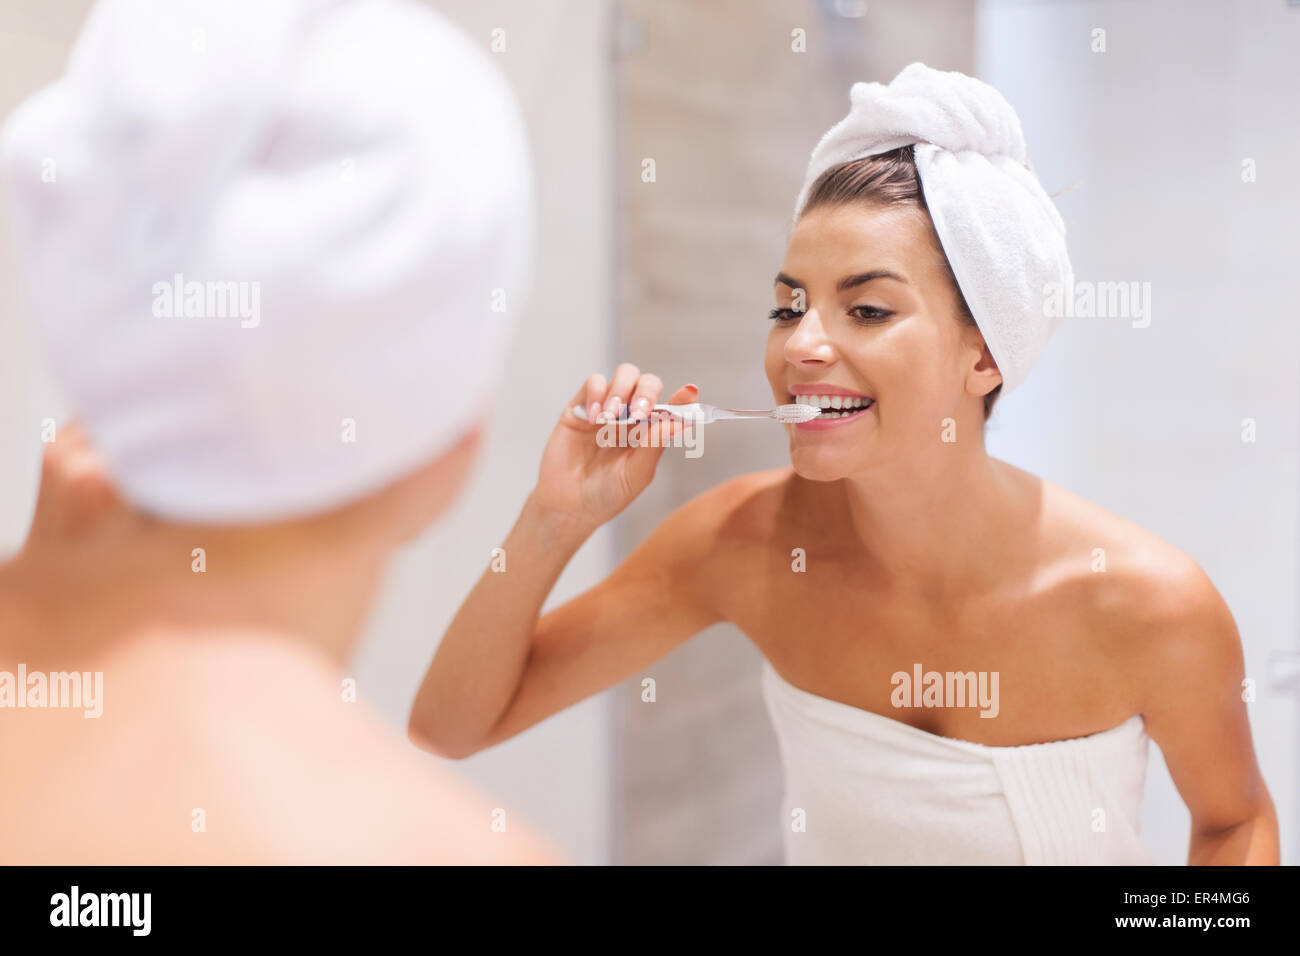 Young woman brushing teeth in bathroom. Debica, Poland - Stock Image